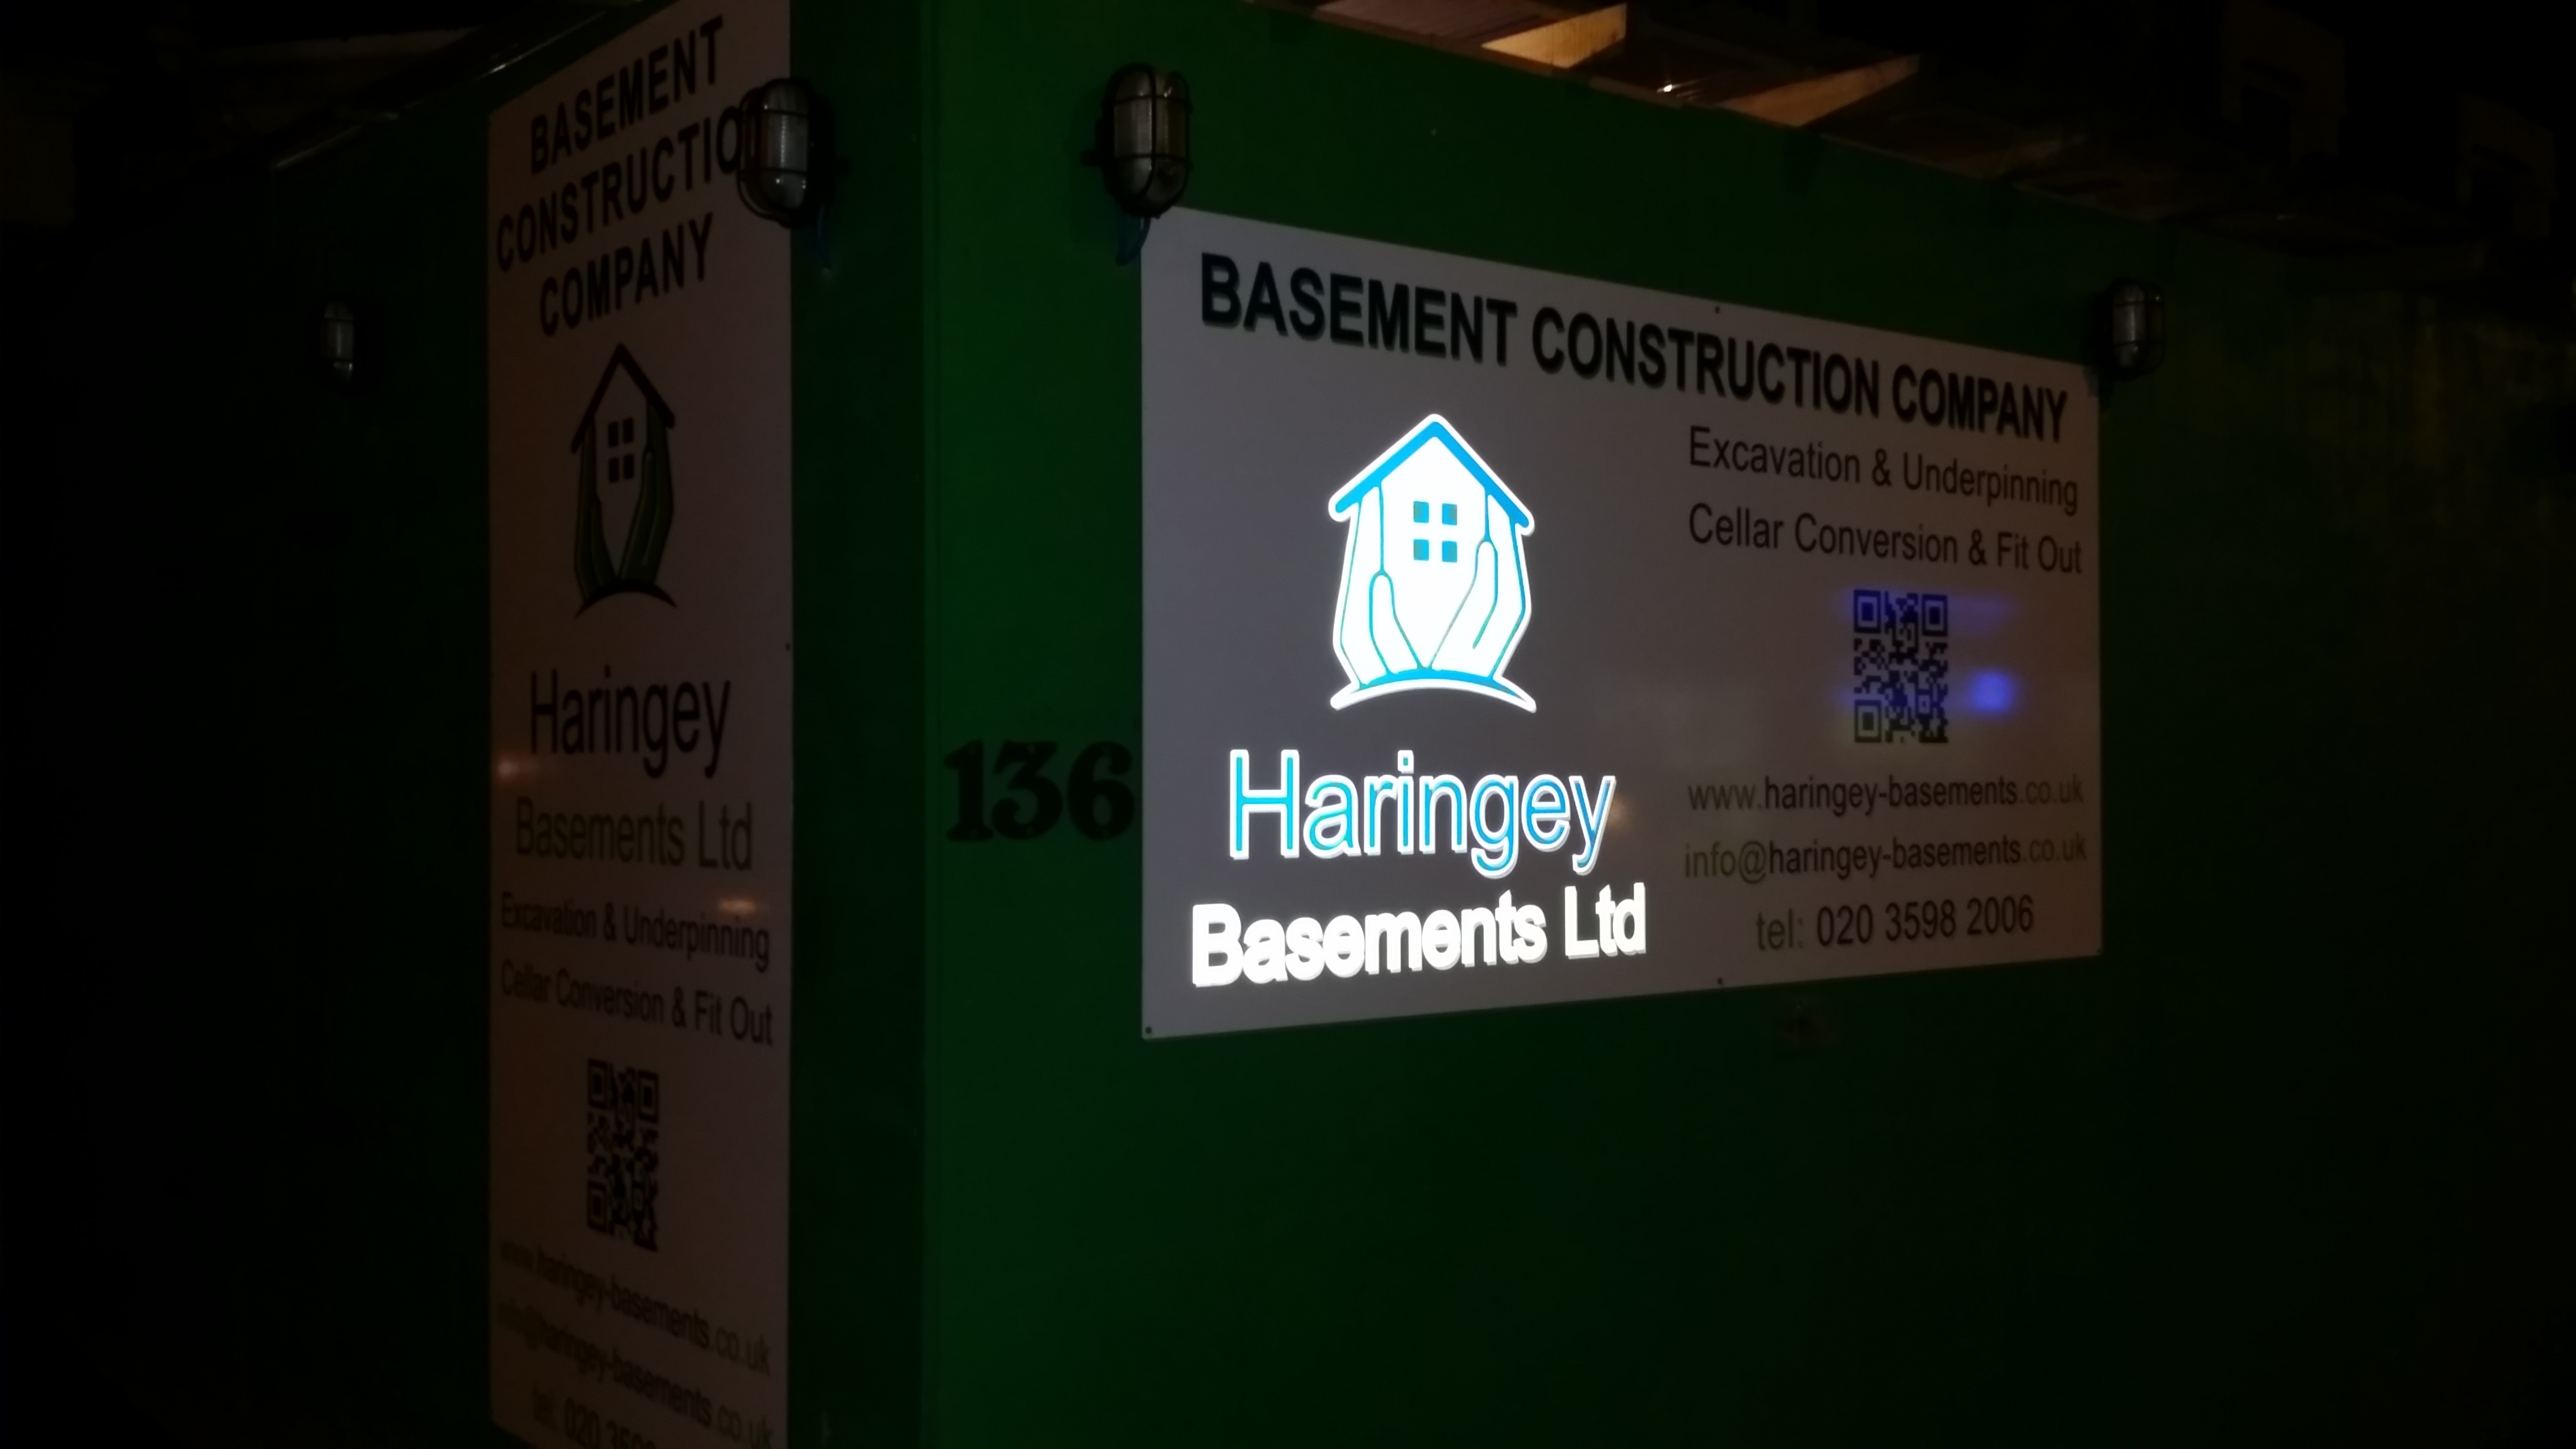 Haringey Basements Ltd - London, London SE25 6AQ - 020 3598 2006 | ShowMeLocal.com